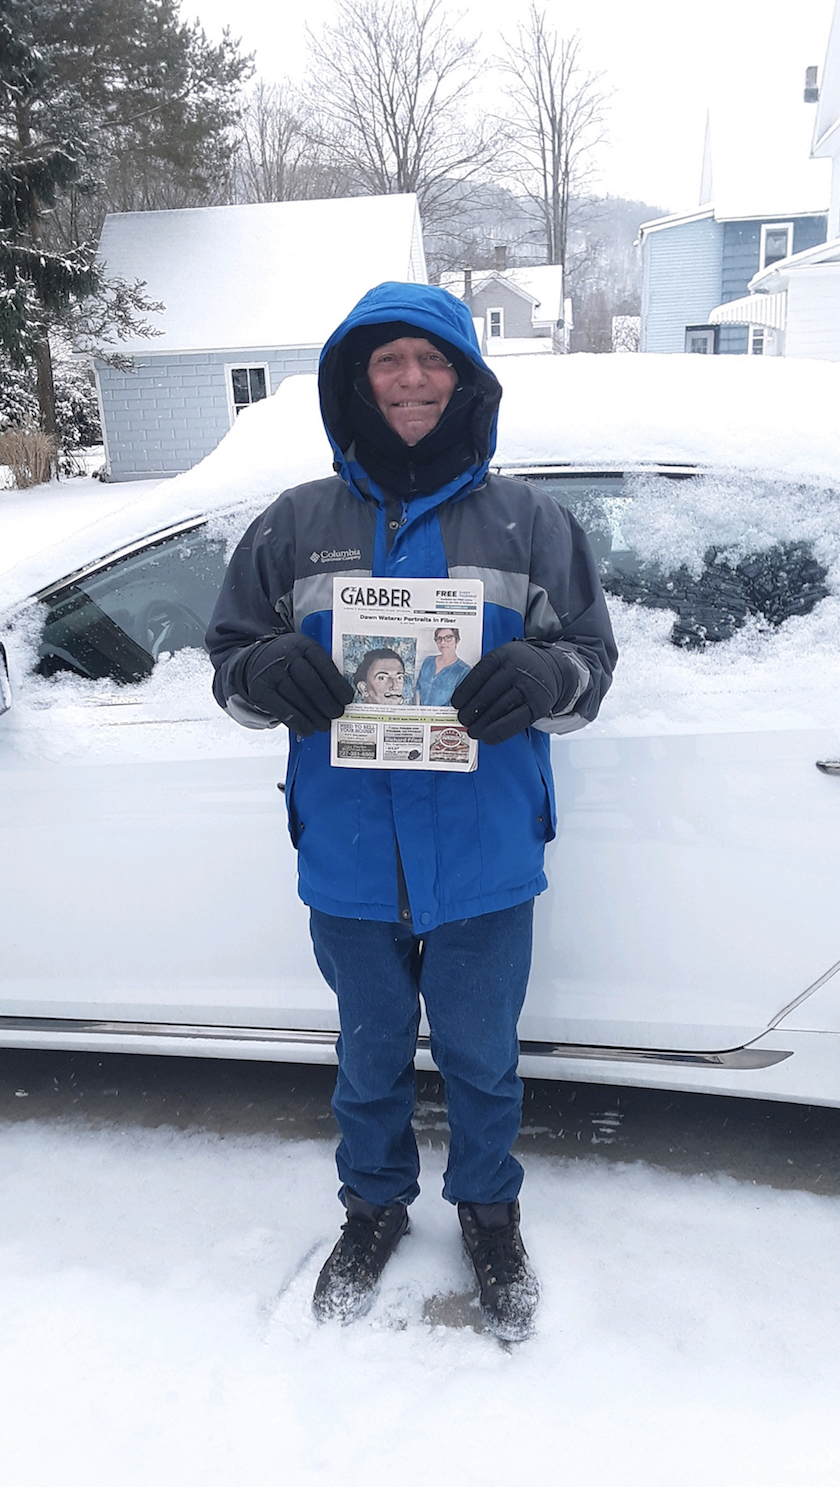 A man standing in snow next to a car, wearing a blue coat and holding a Gabber Newspaper.